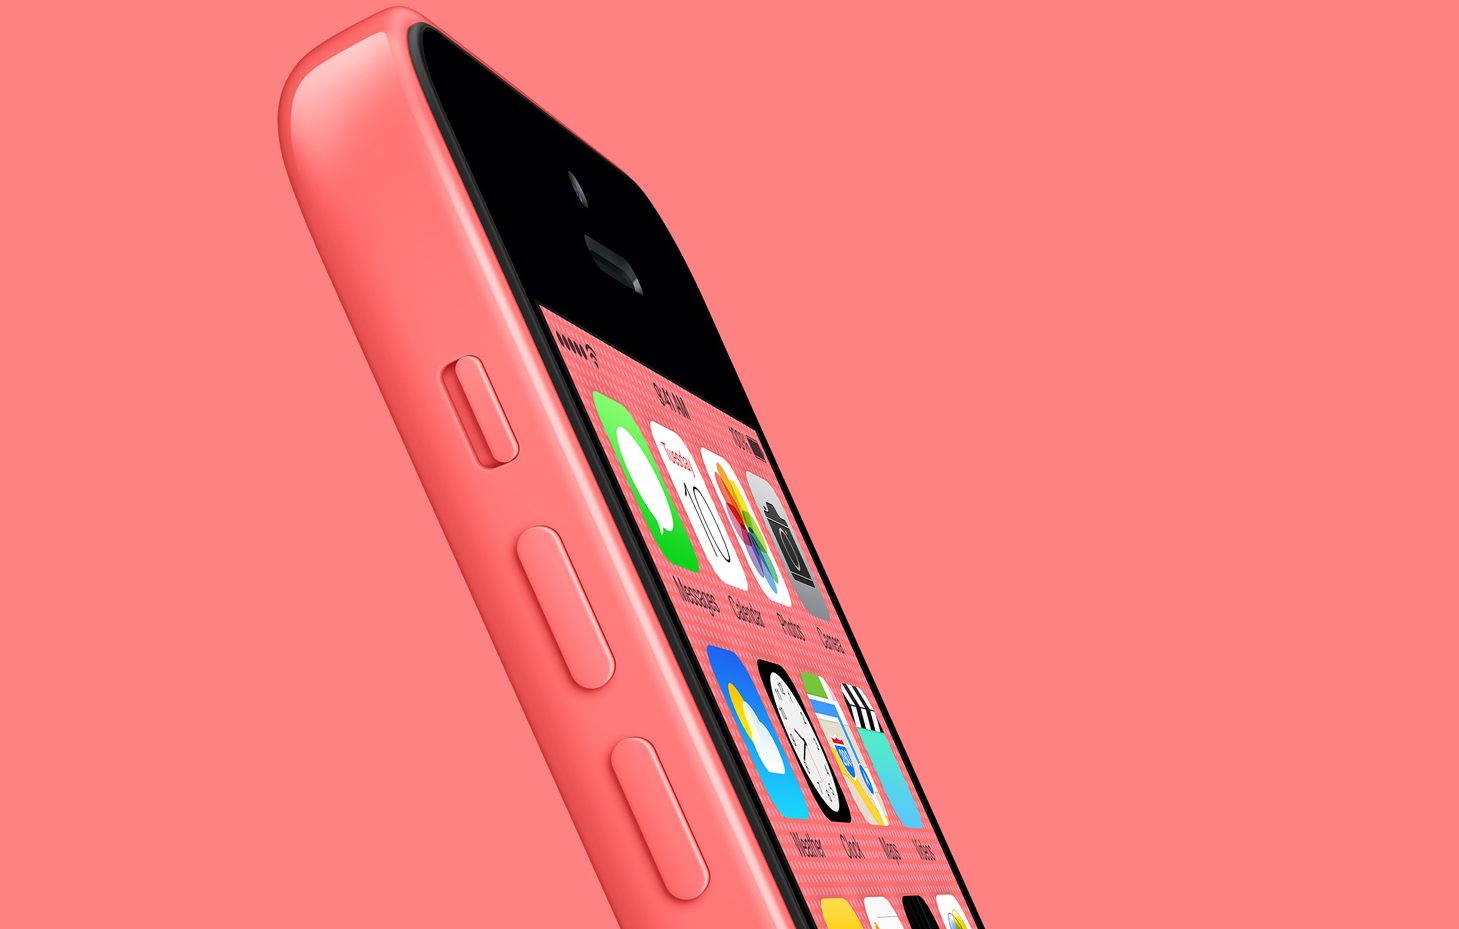 Iphone 5 Backgrounds Pink iPhone 5c photo...